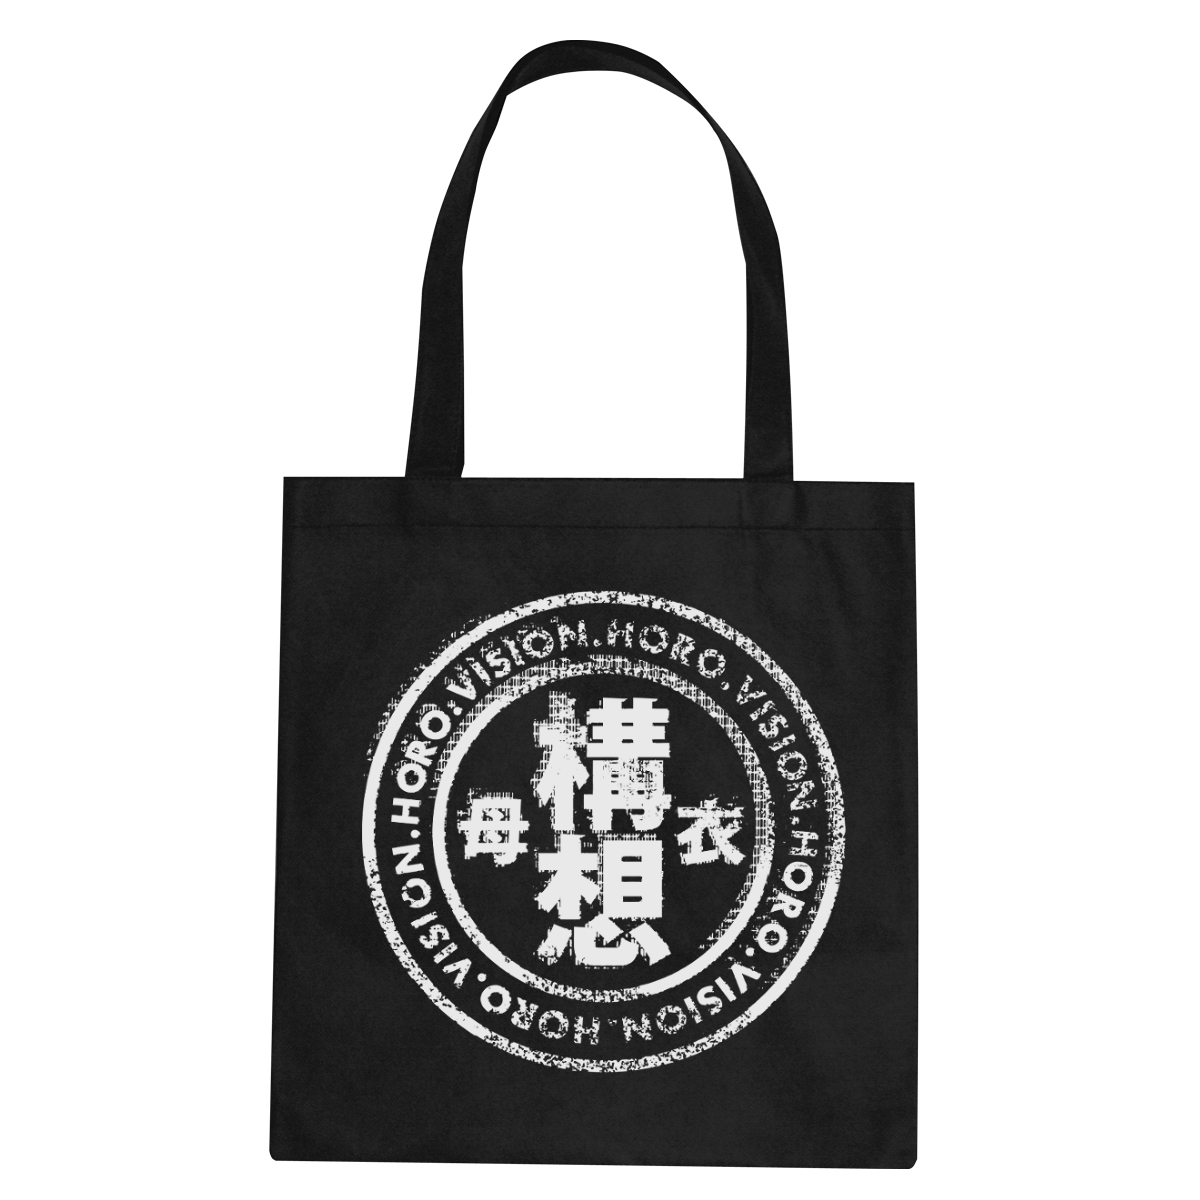 Horo Vision - Distorted Tote Bag